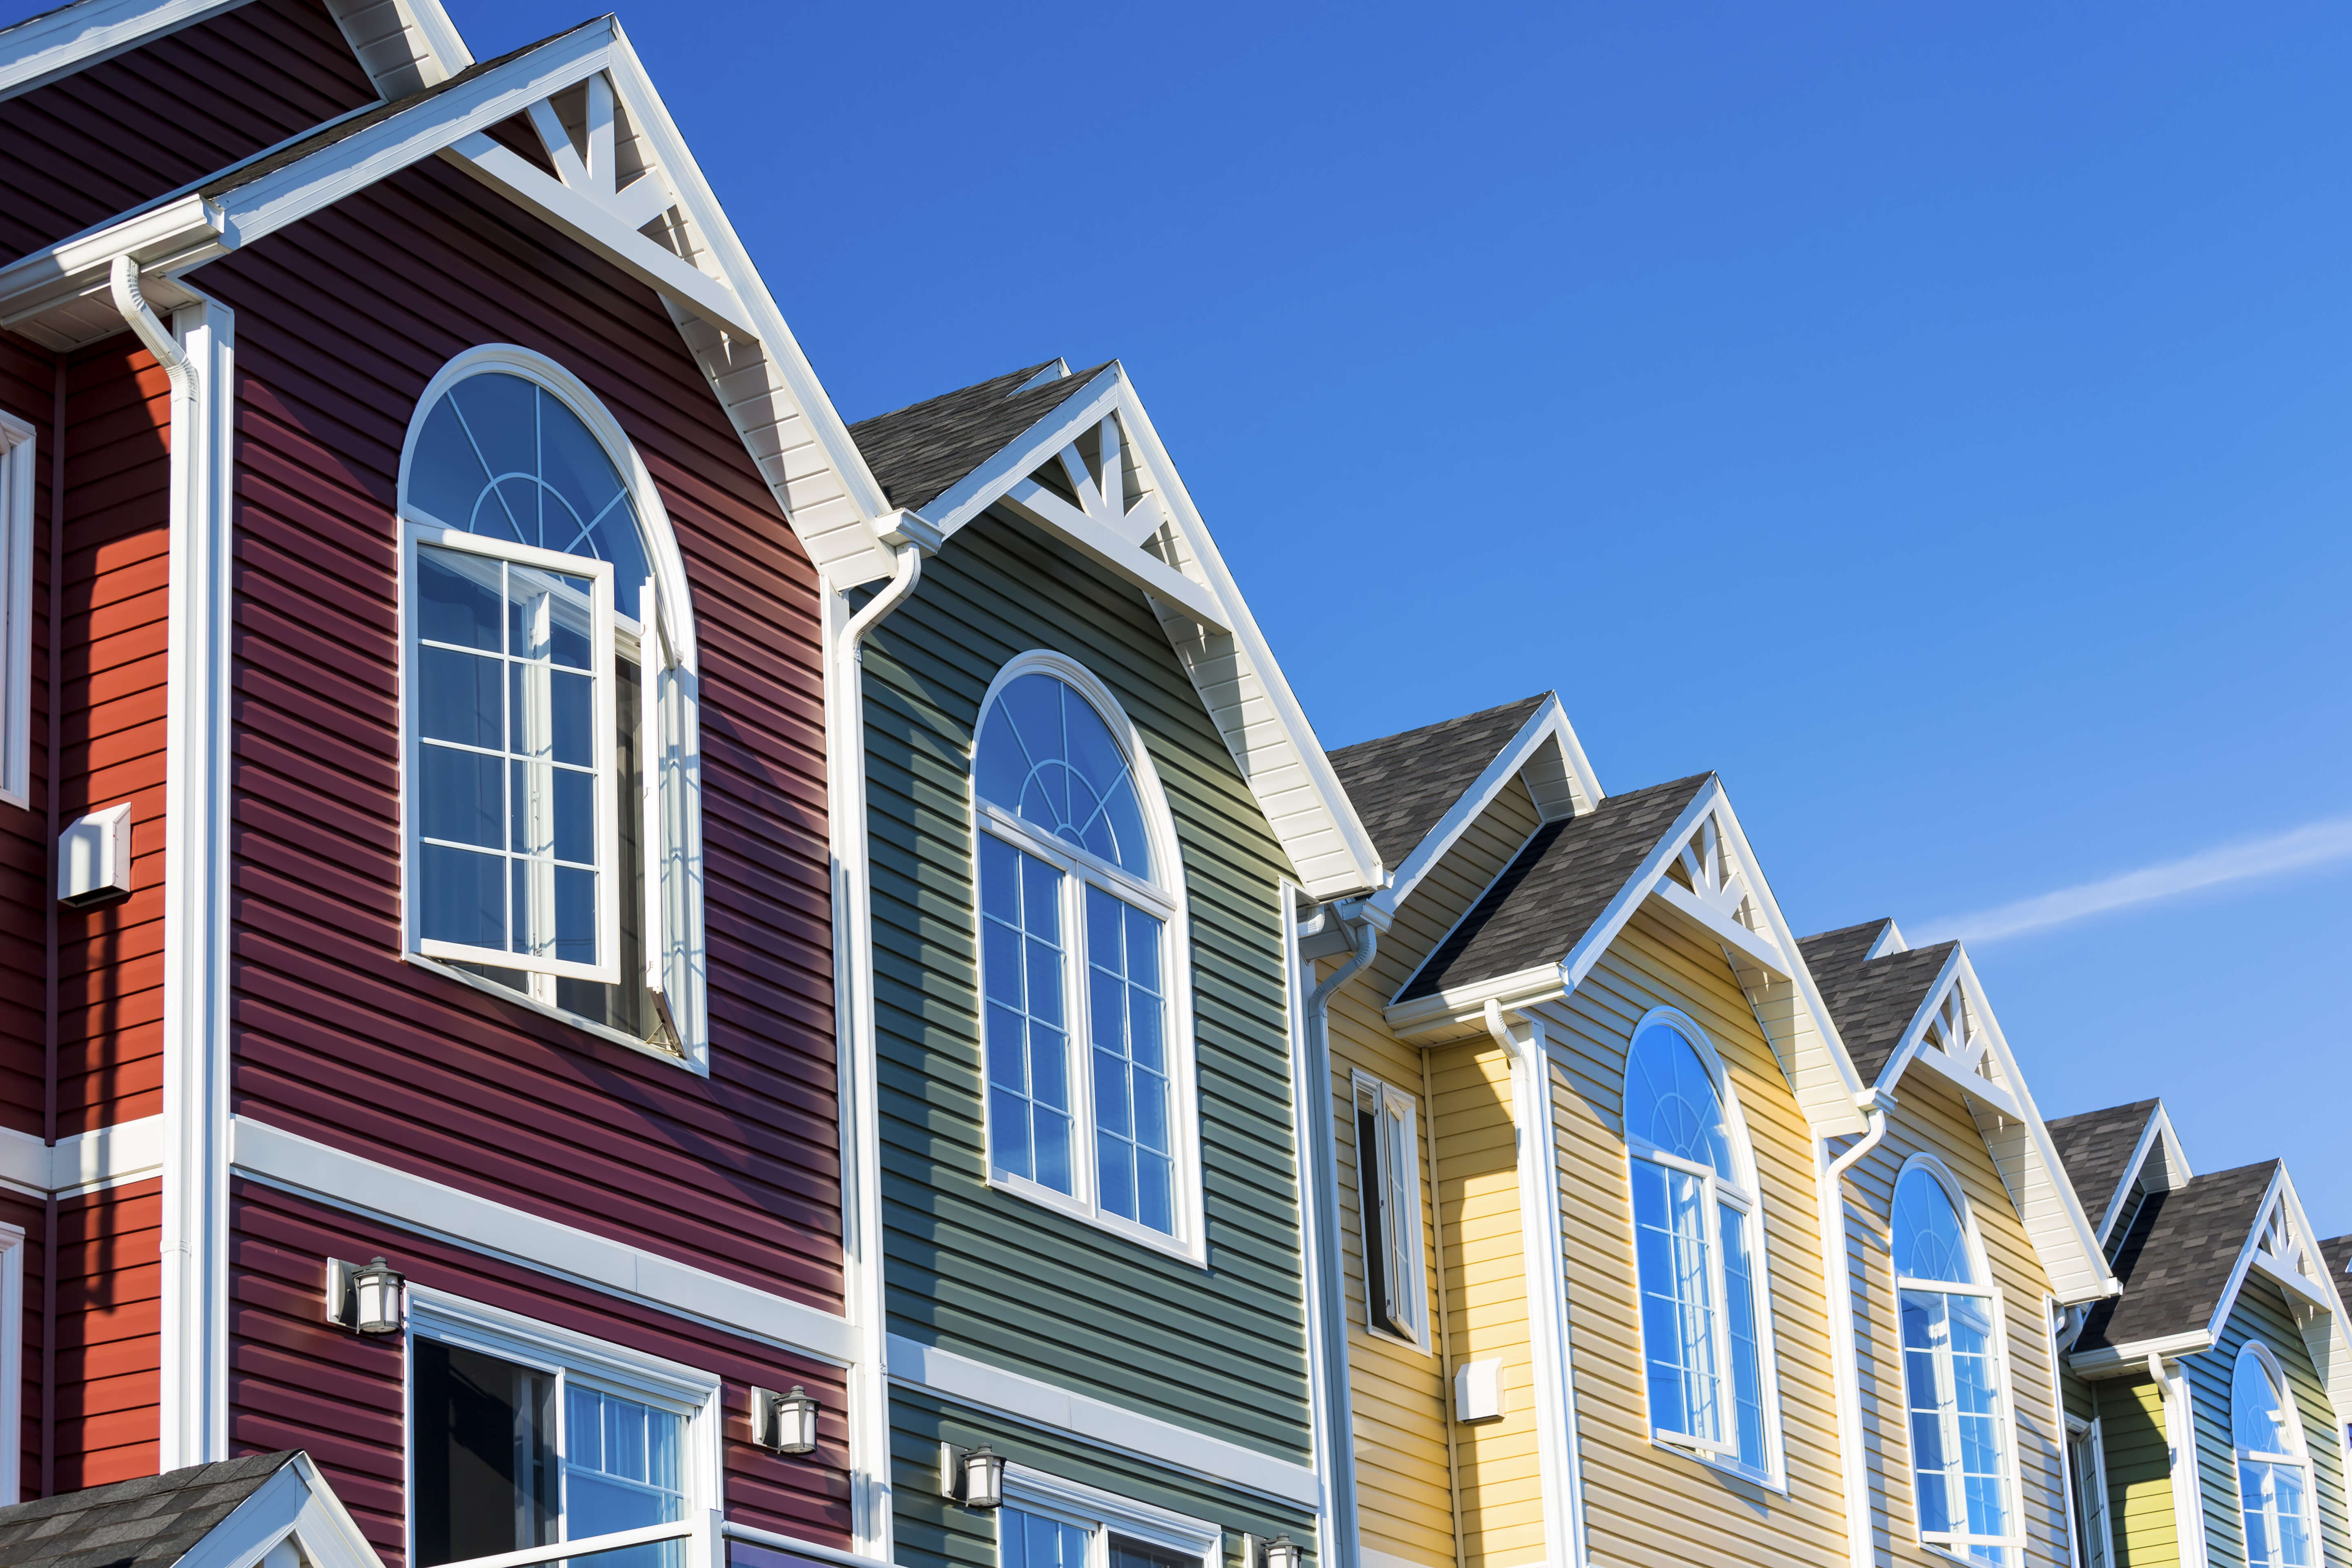 Colorful vinyl siding on townhomes